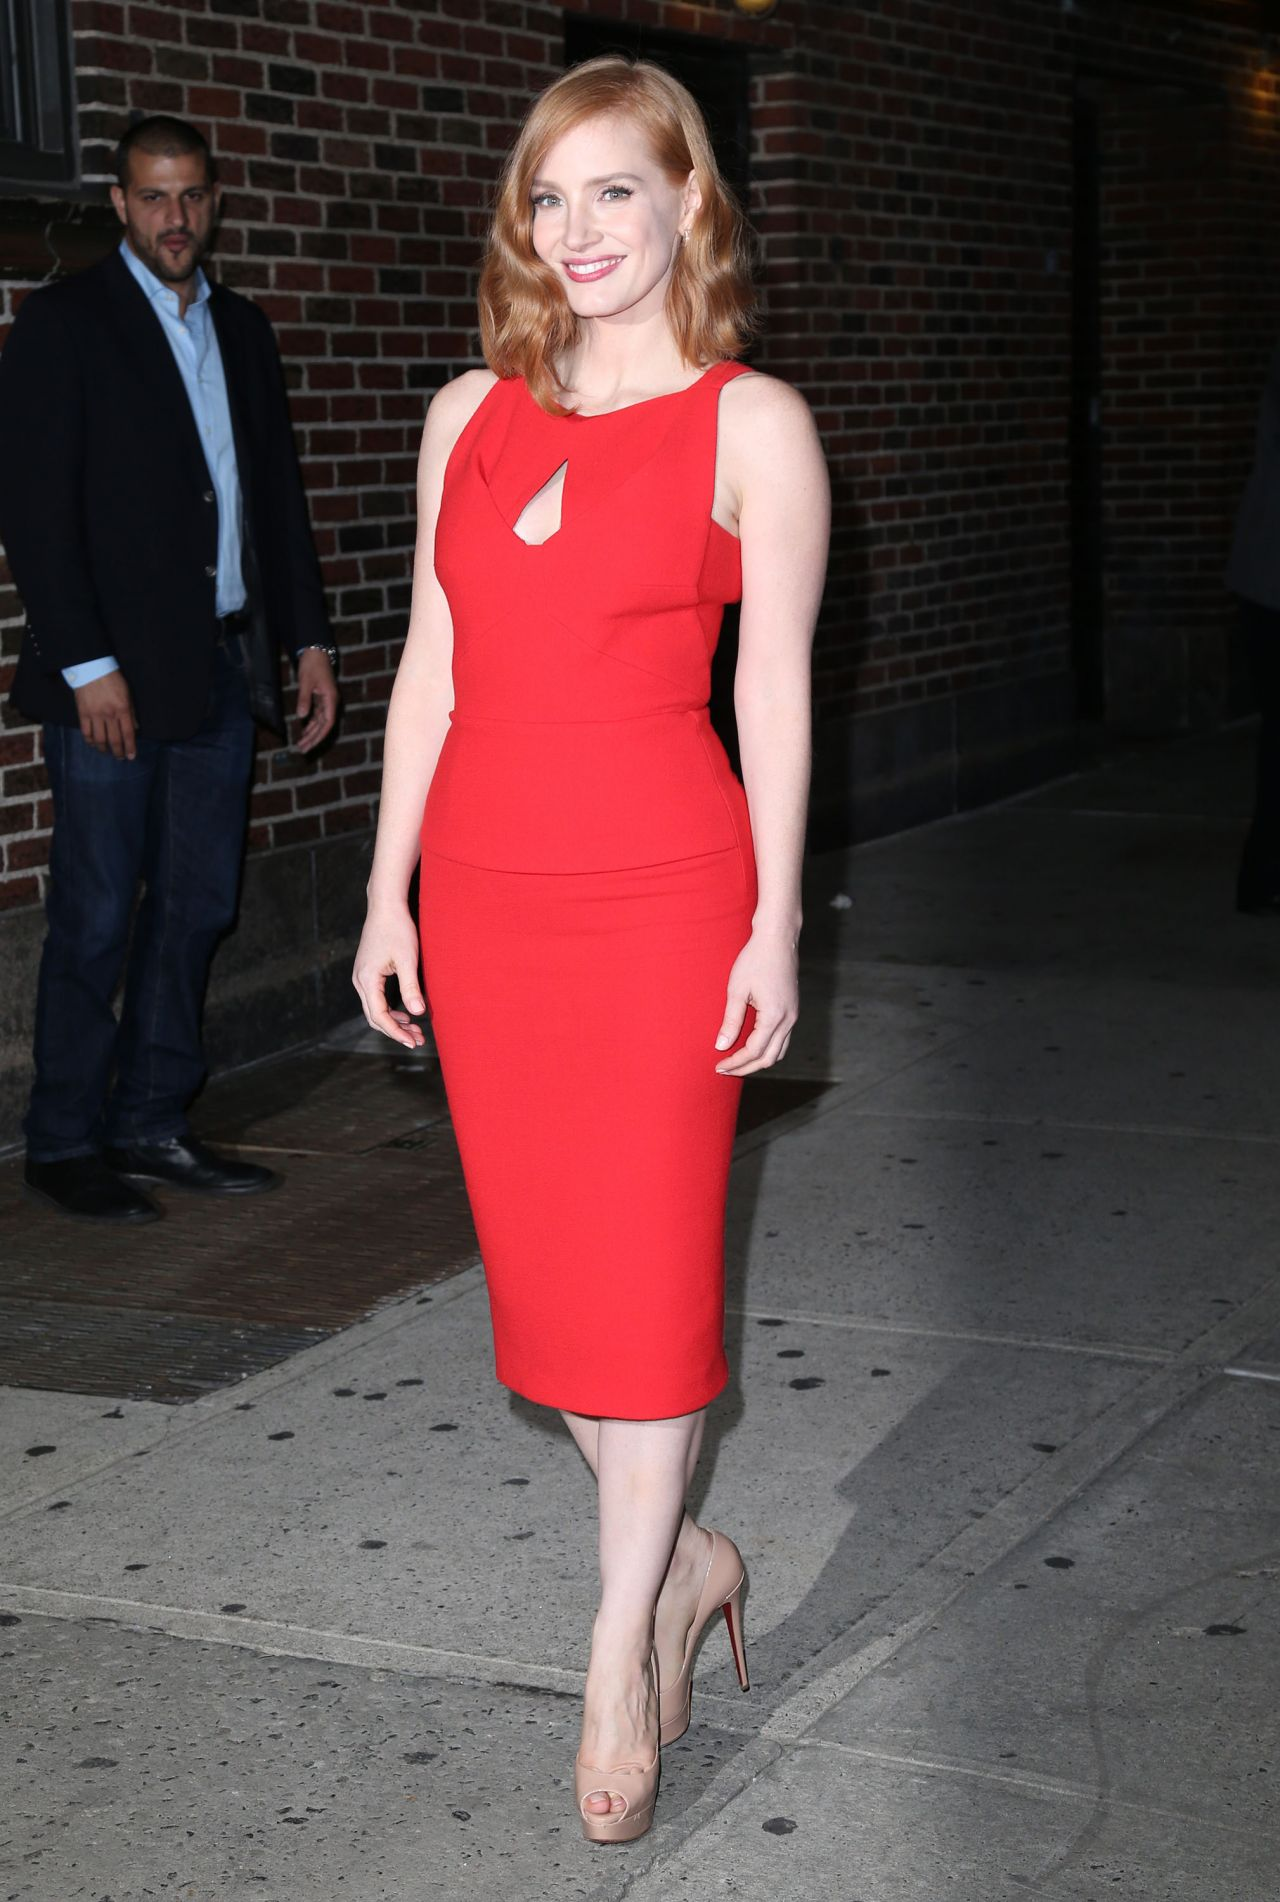 jessica-chastain-the-late-show-with-stephen-colbert-in-new-york-city-october-2015_5